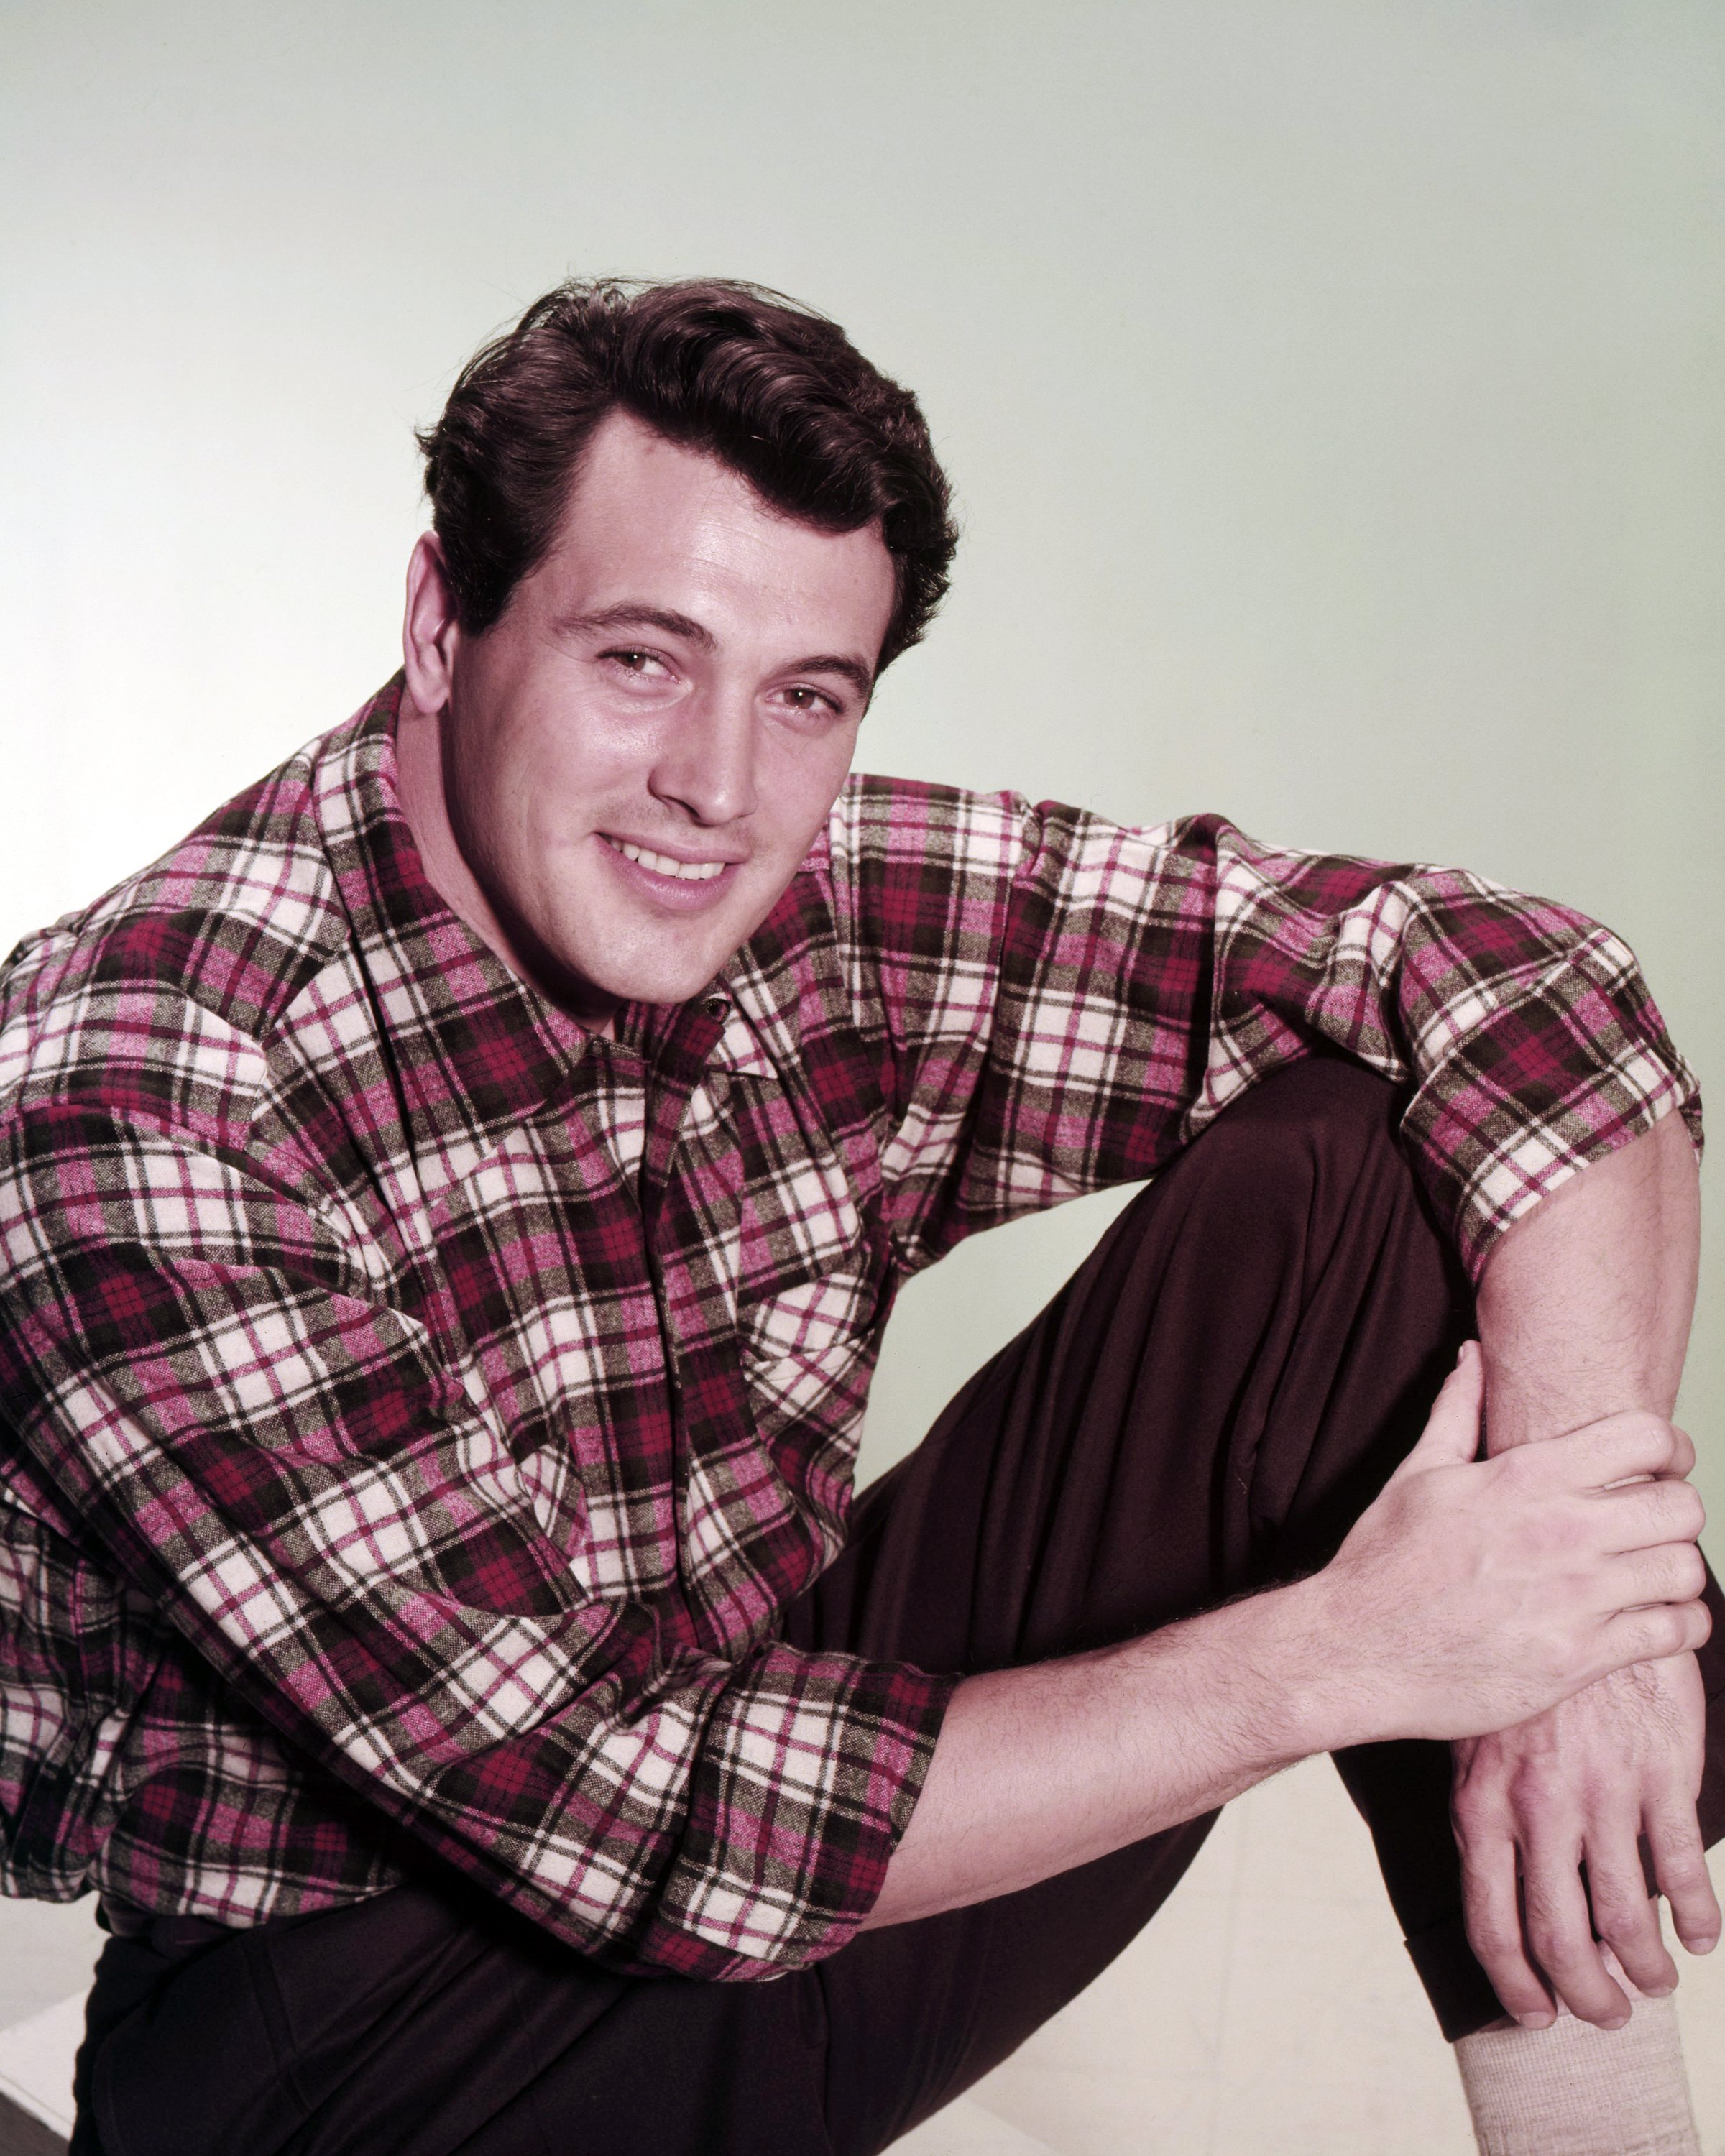 A portrait of American actor, Rock Hudson, wearing a plaid shirt, circa 1955 | Photo: Getty Images